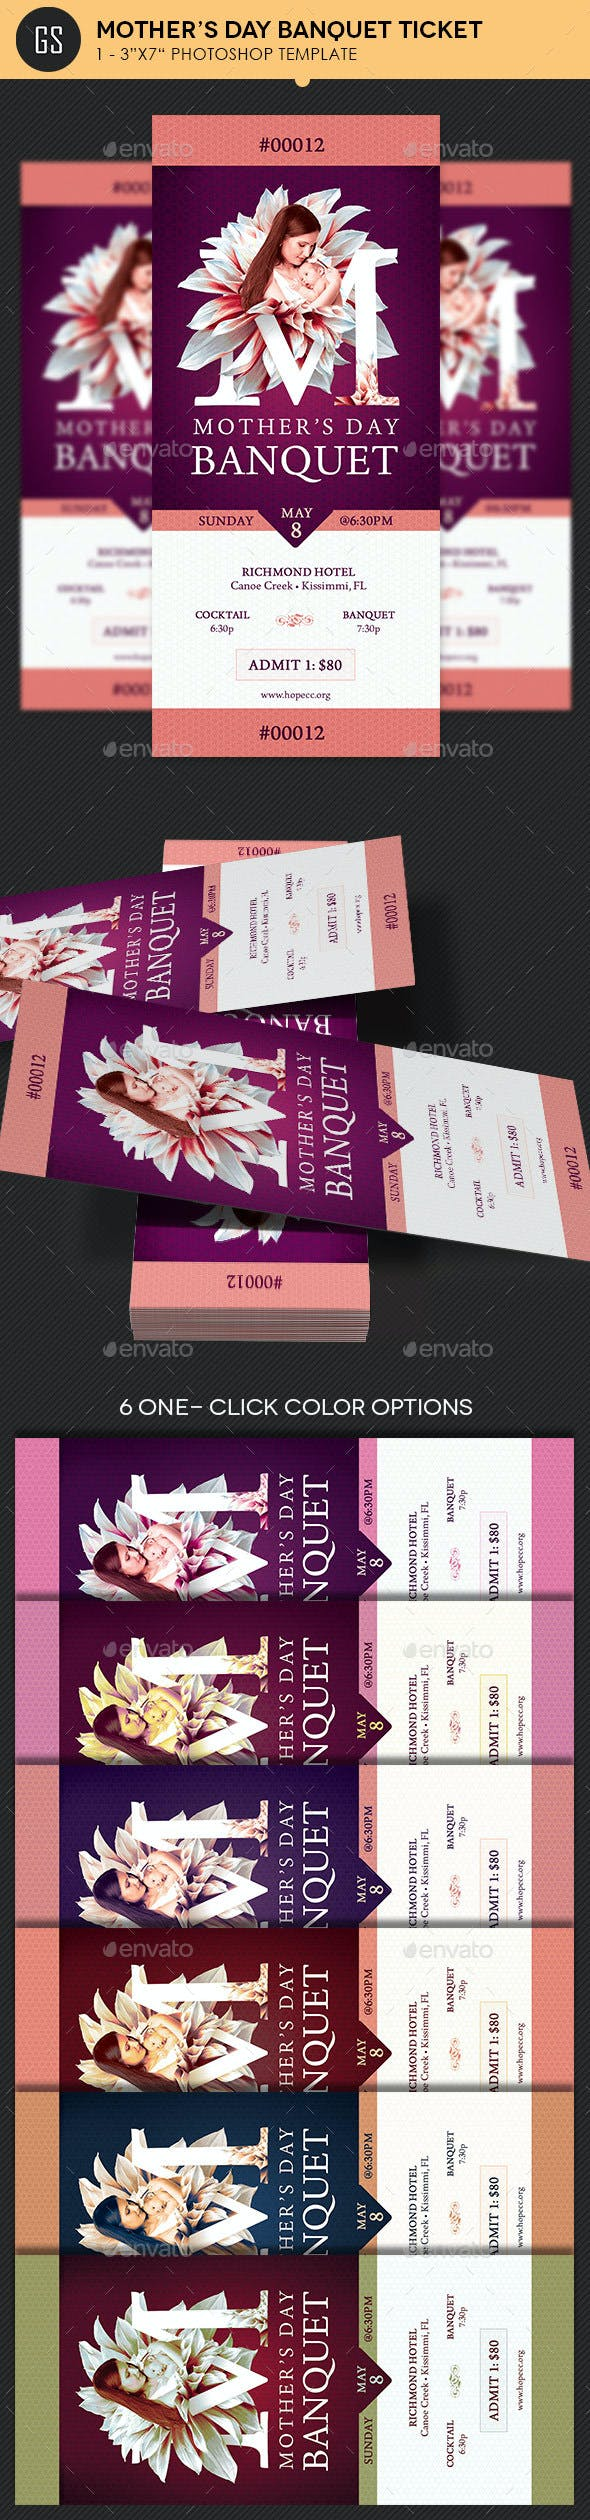 Mothers Day Banquet Ticket Template Miscellaneous Print Templates